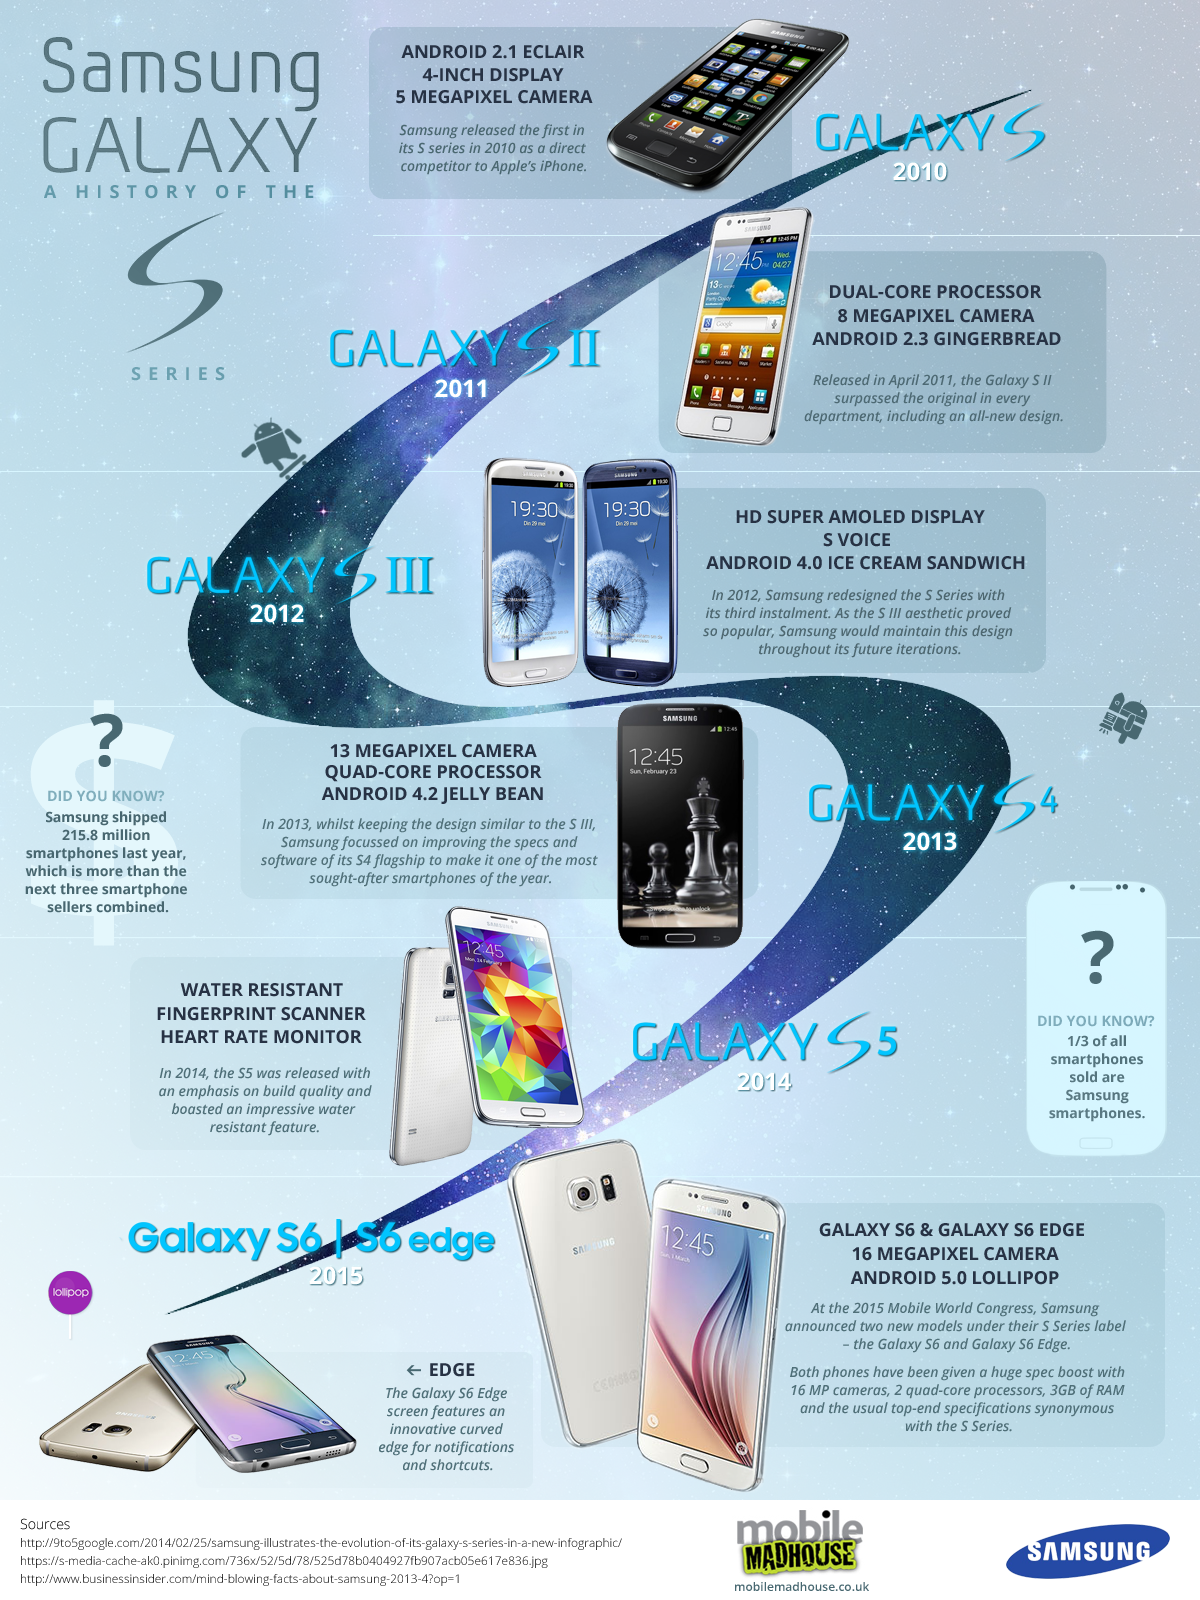 A brief history of the Samsung Galaxy S series [Infographic]